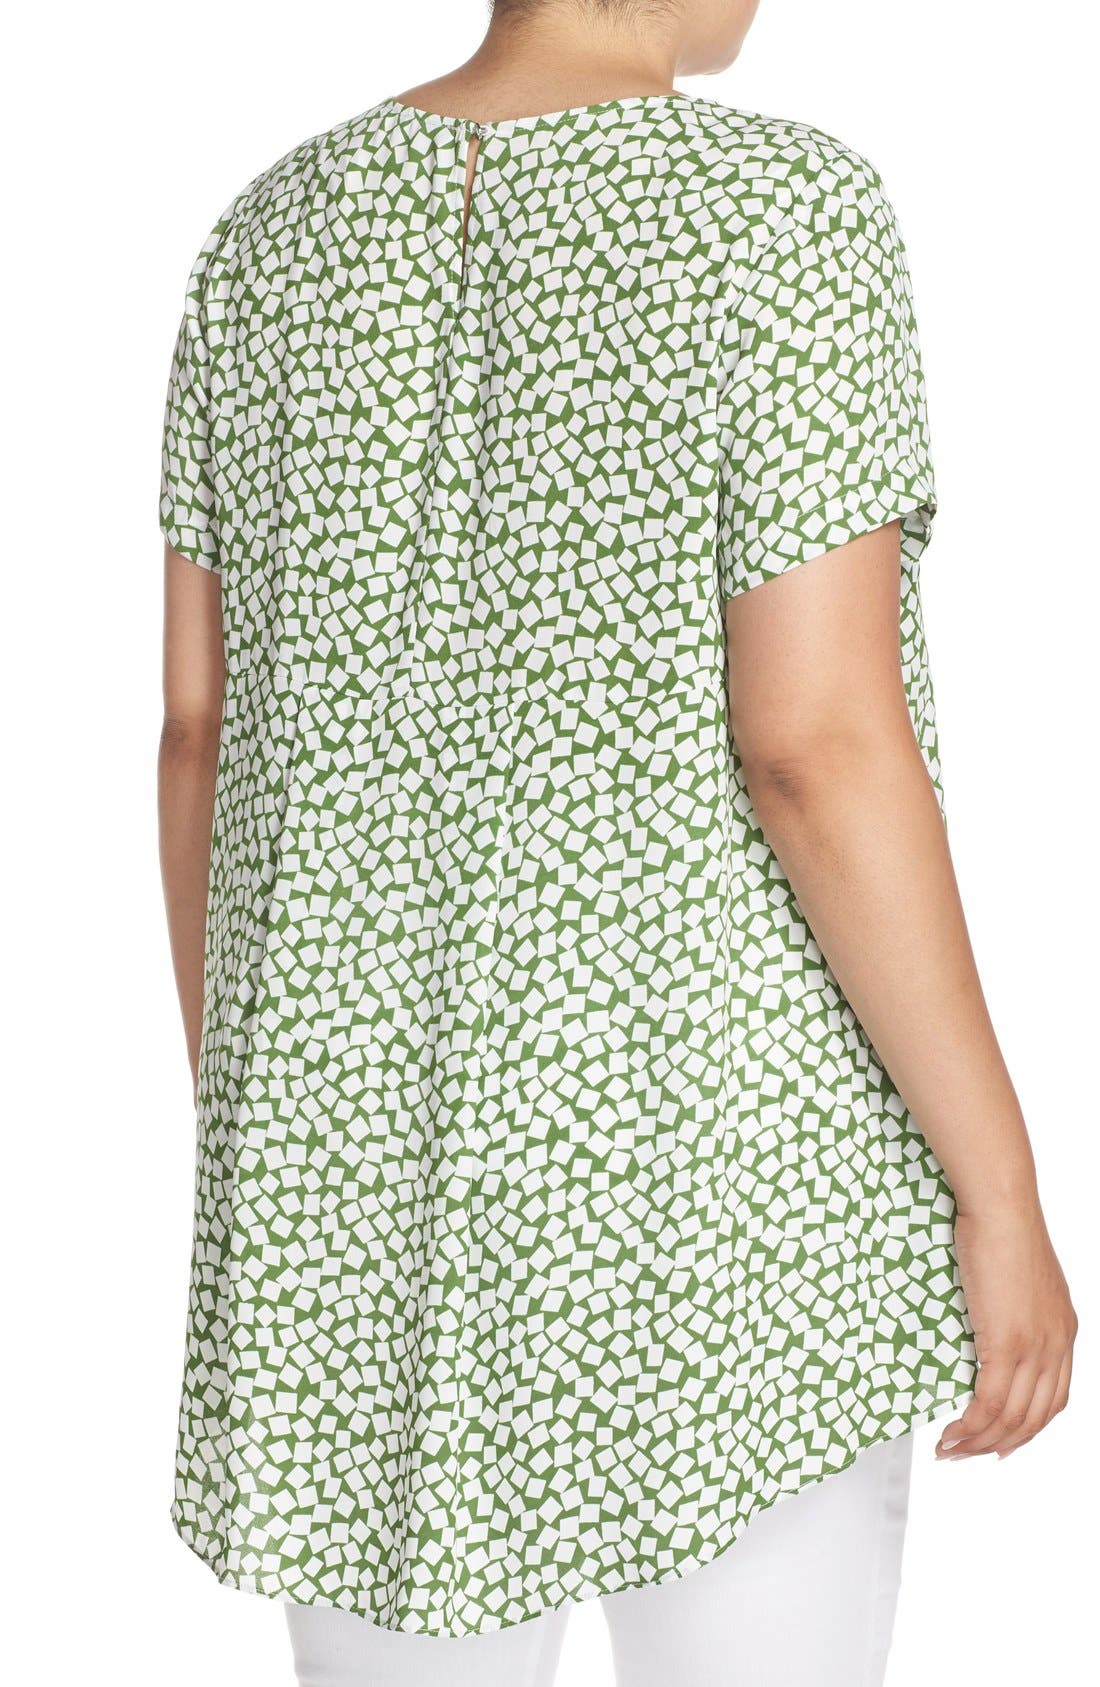 Alternate Image 2  - Vince Camuto 'Falling Cubes' Print Short Sleeve High/Low Blouse (Plus Size)